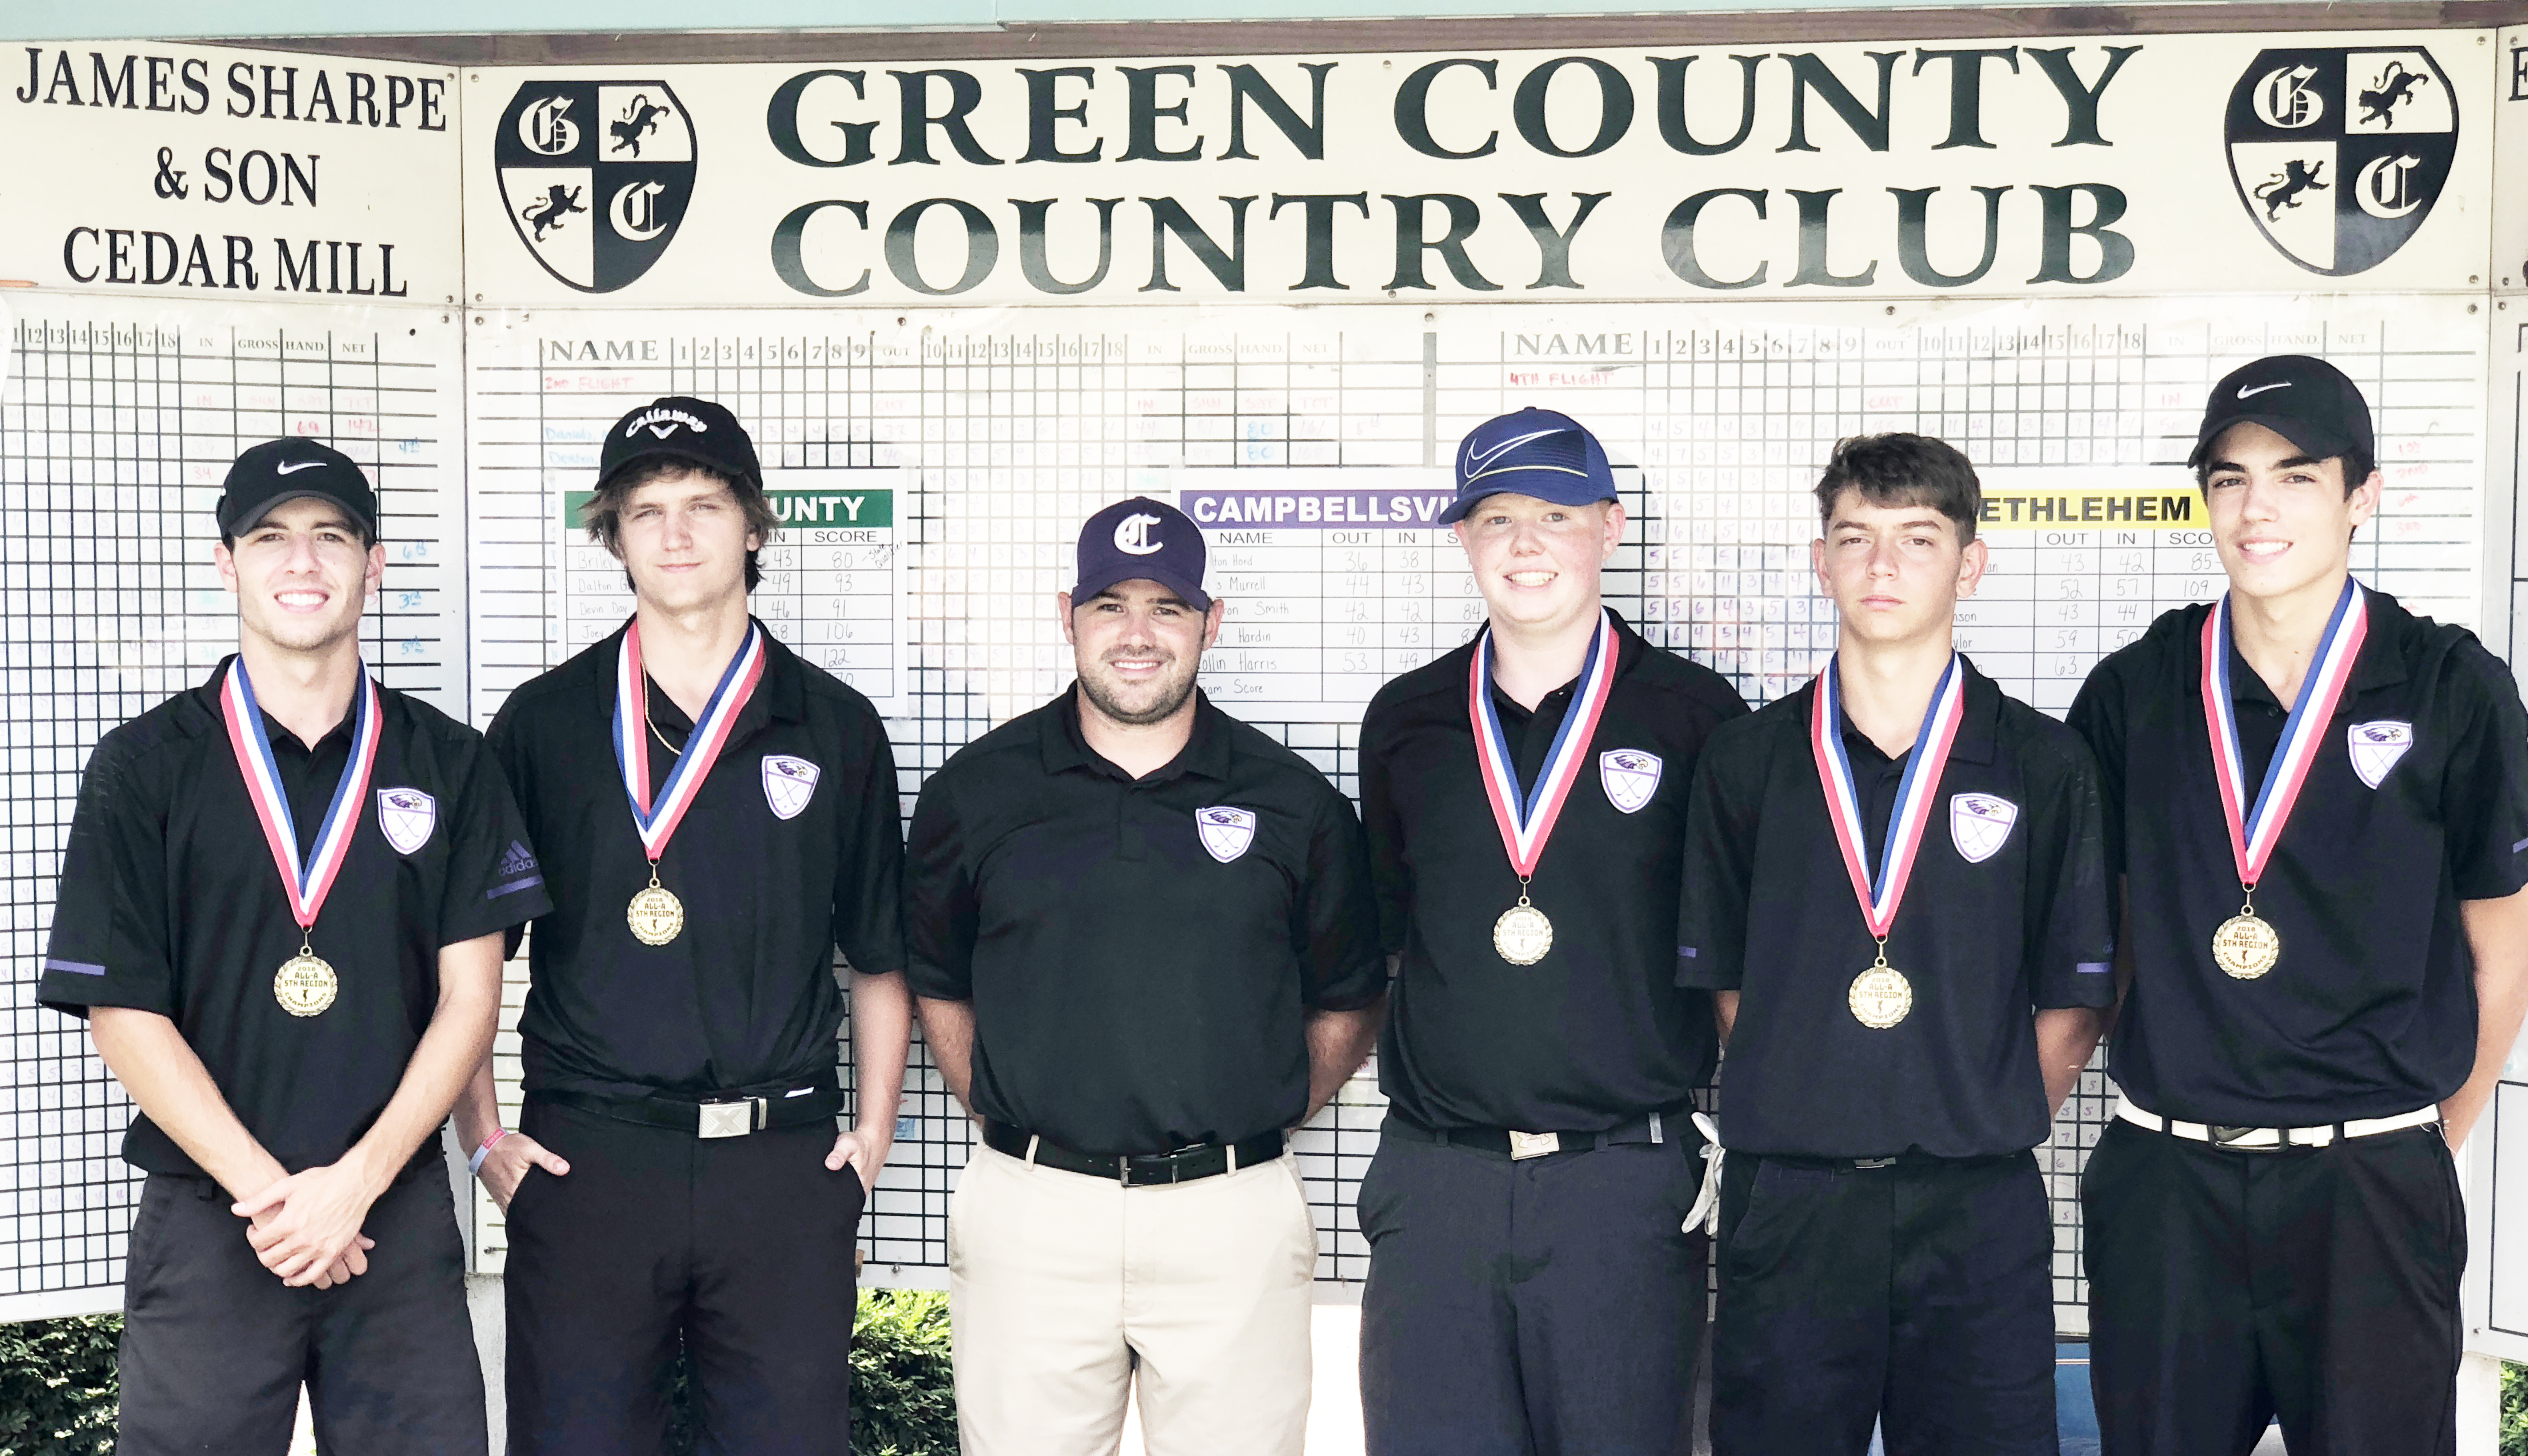 "For the fourth year in a row, the Campbellsville High School boys' golf team has won the All ""A"" fifth region championship, and will advance to the All ""A"" state tournament. From left are seniors Layton Hord and Myles Murrell, coach Blake Milby, sophomore Colin Harris, senior Casey Hardin and sophomore Kameron Smith. Hord was the overall individual winner, finishing 18 holes in 74 strokes."